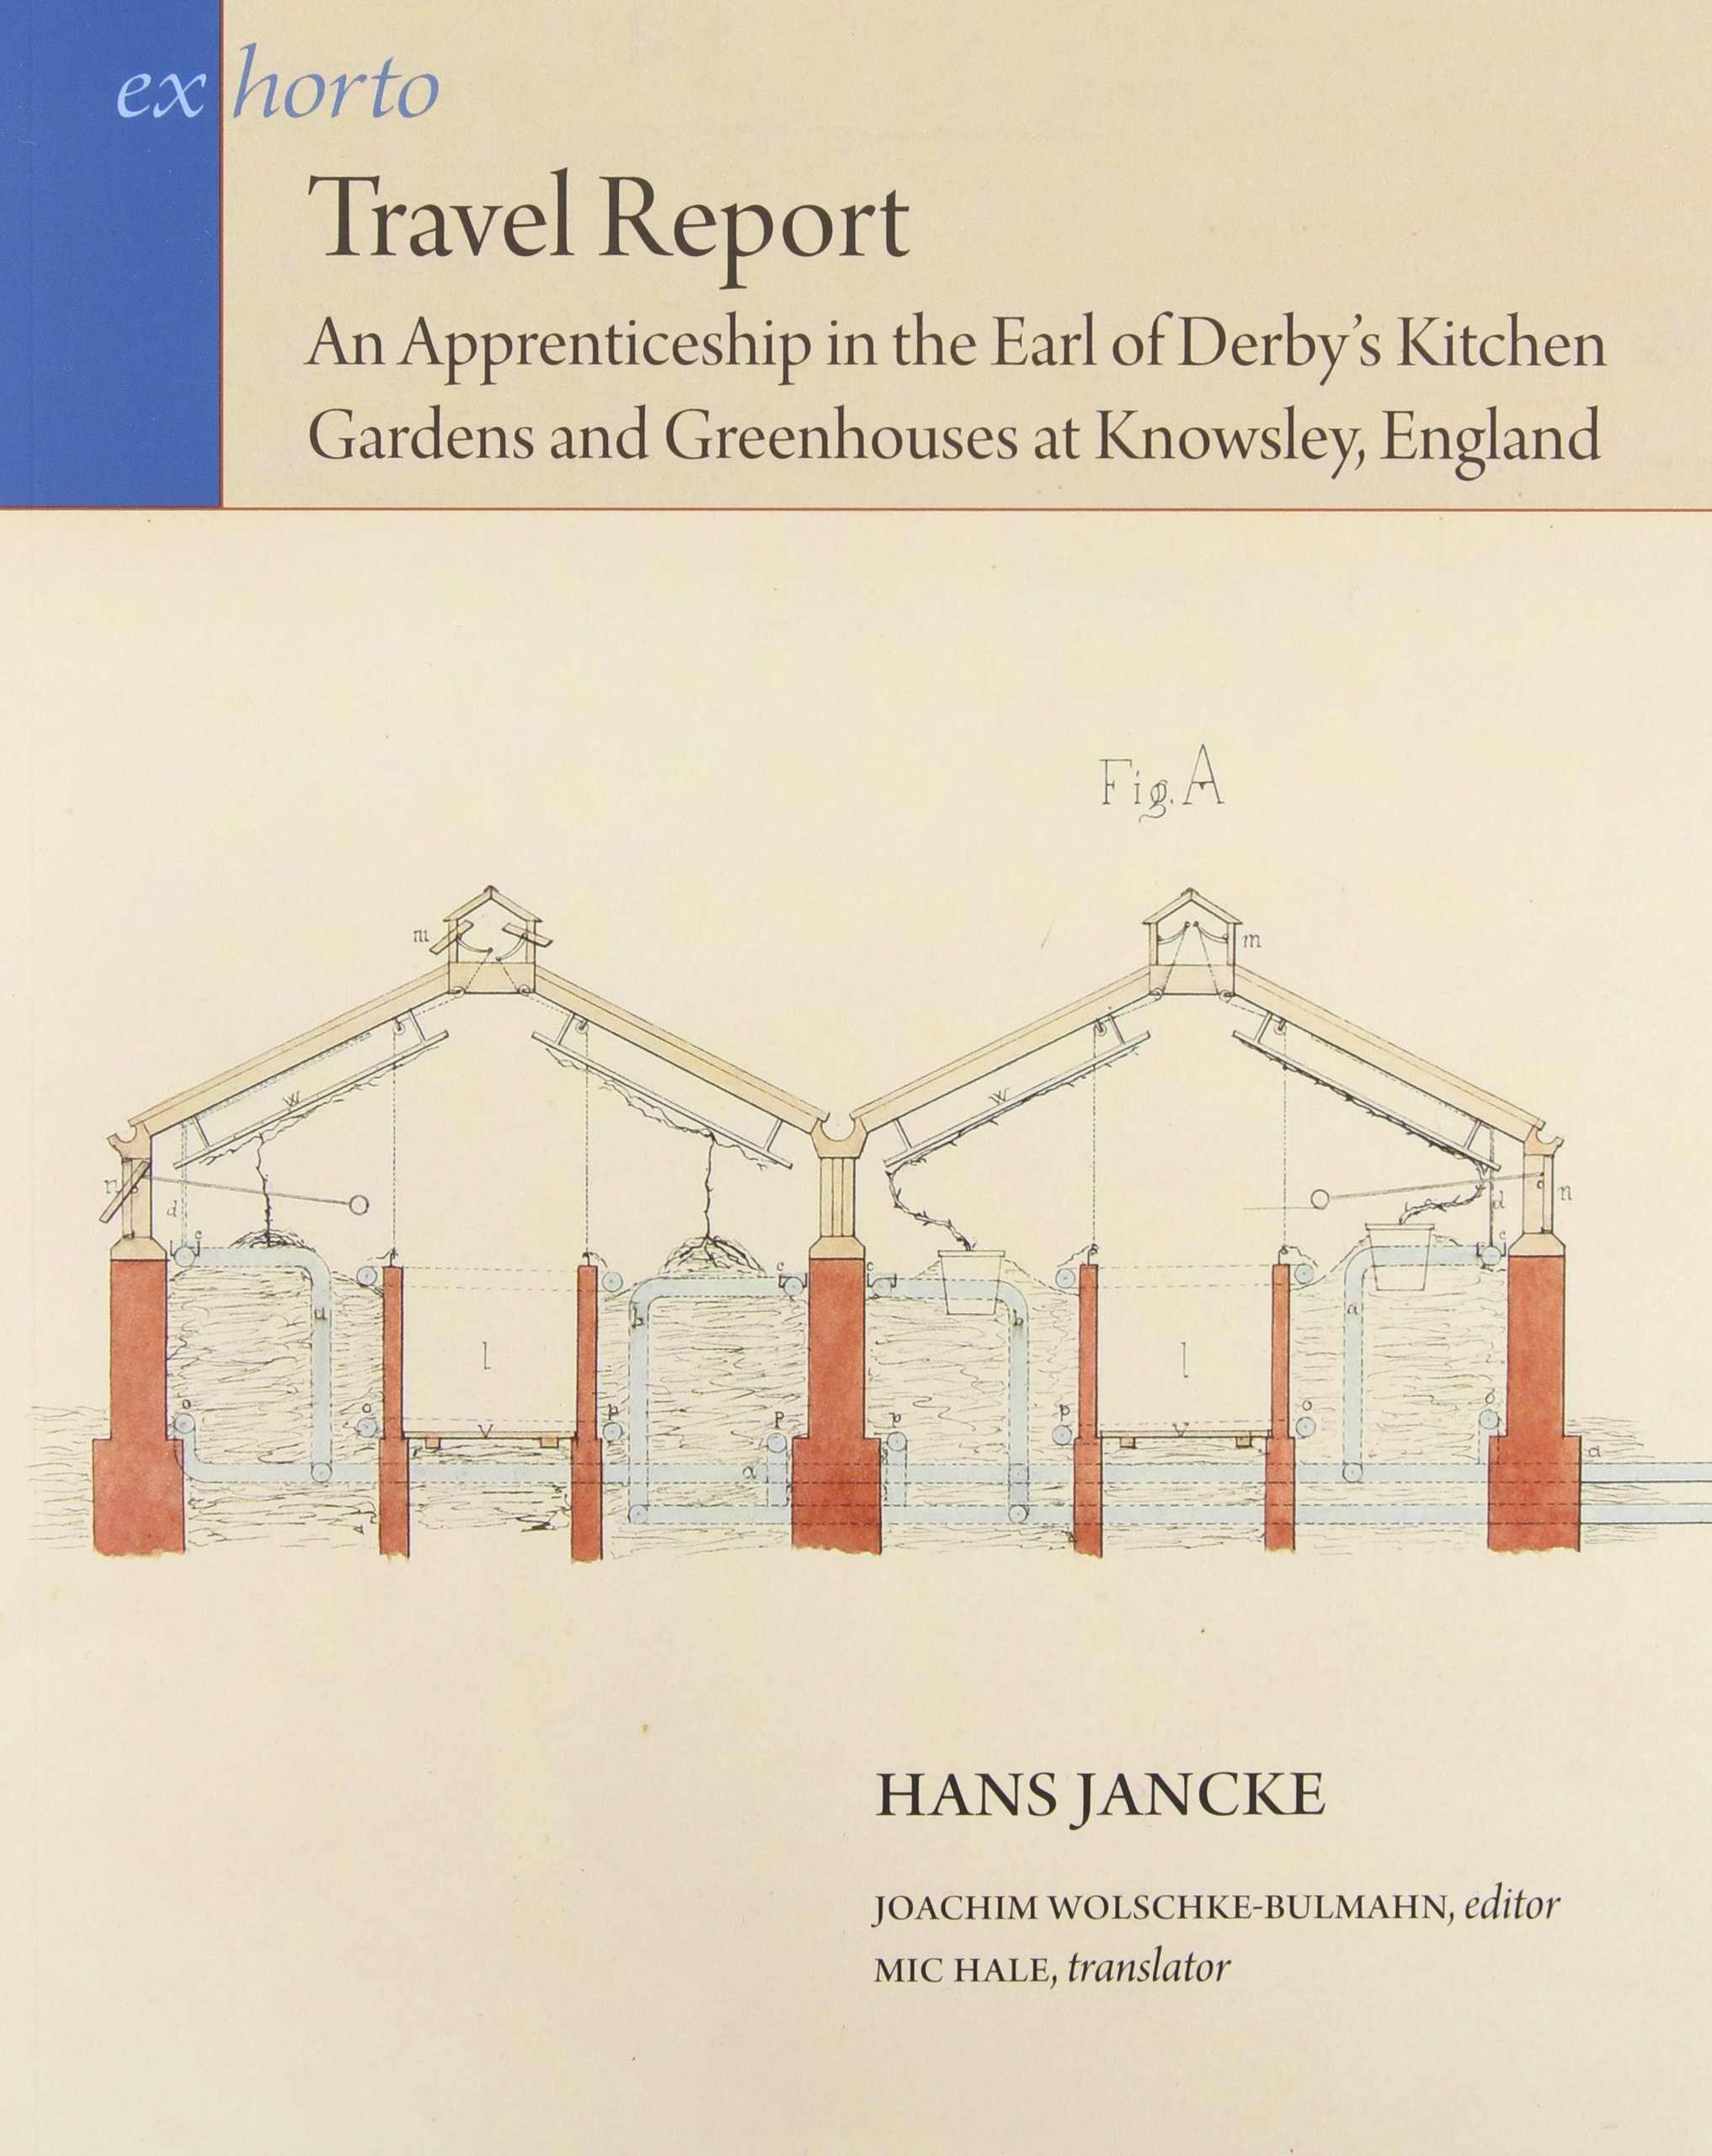 Travel Report: An Apprenticeship in the Earl of Derby's Kitchen Gardens and Greenhouses at Knowsley, England (Ex Horto: Dumbarton Oaks Texts in Garden and Landscape Studies)